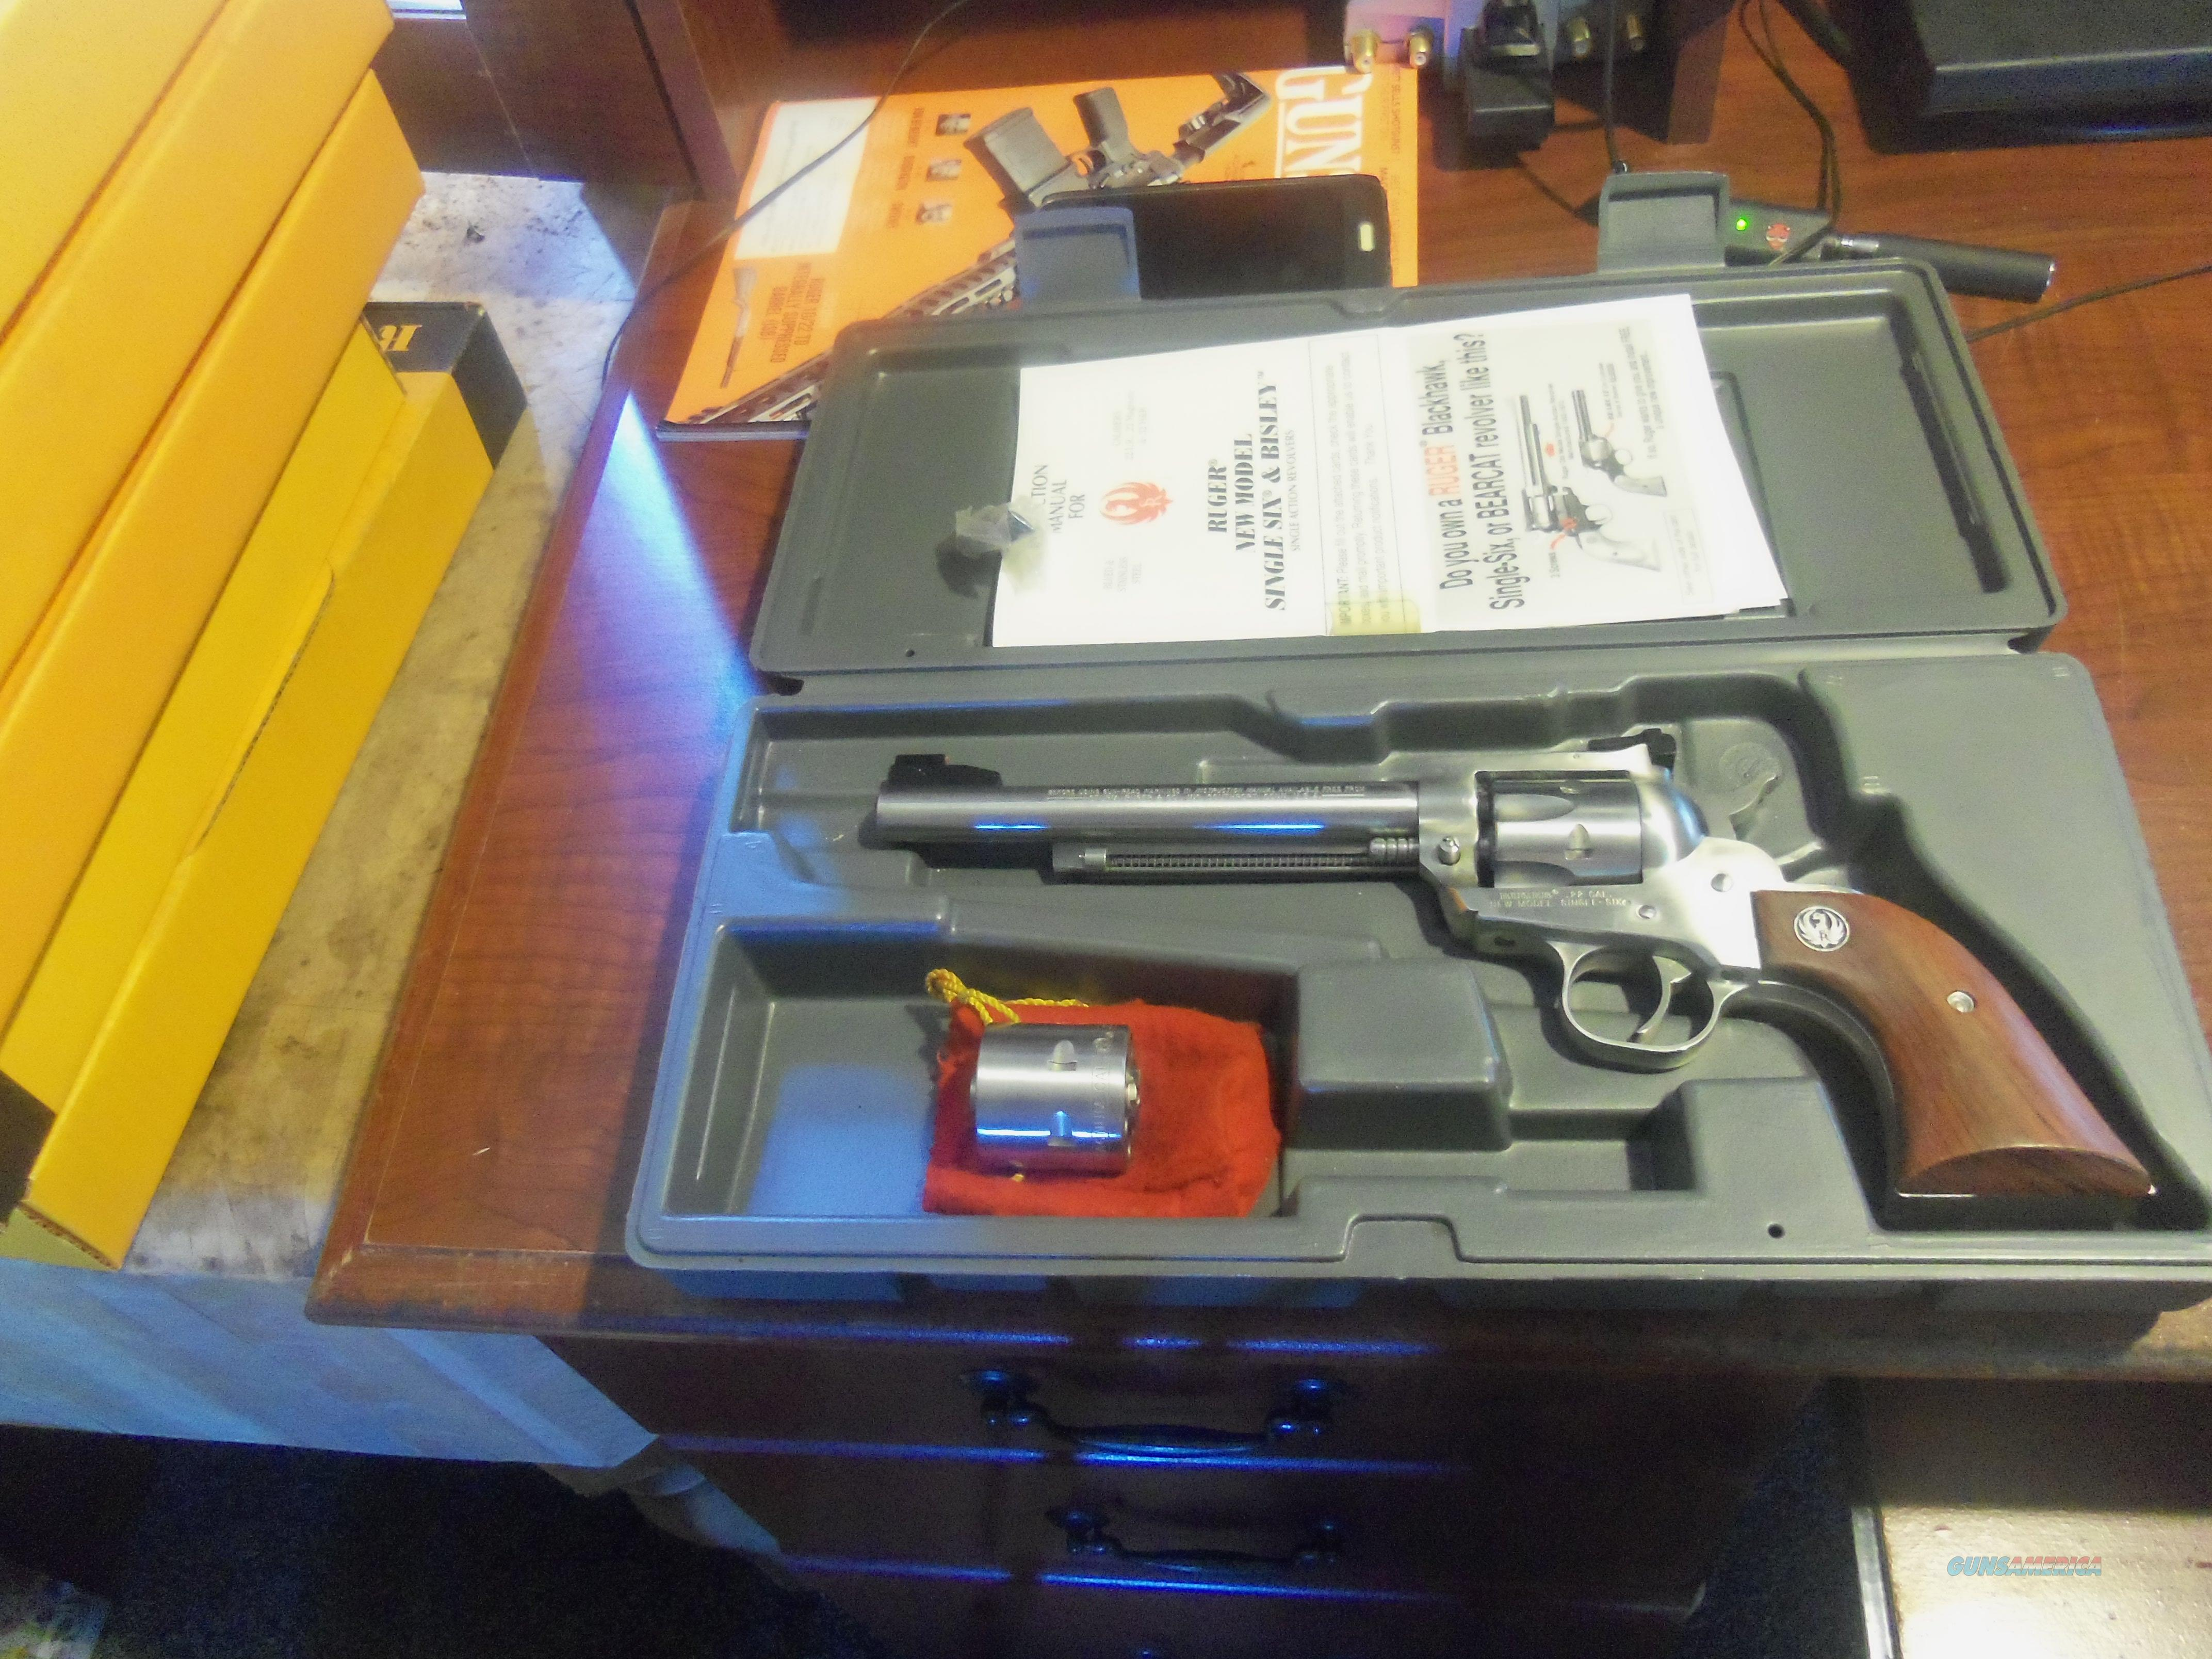 "NEW MODEL SINGLE SIX CONVERTABLE STAINLESS 6"" 22LR/22MAG  Guns > Pistols > Ruger Single Action Revolvers > Single Six Type"